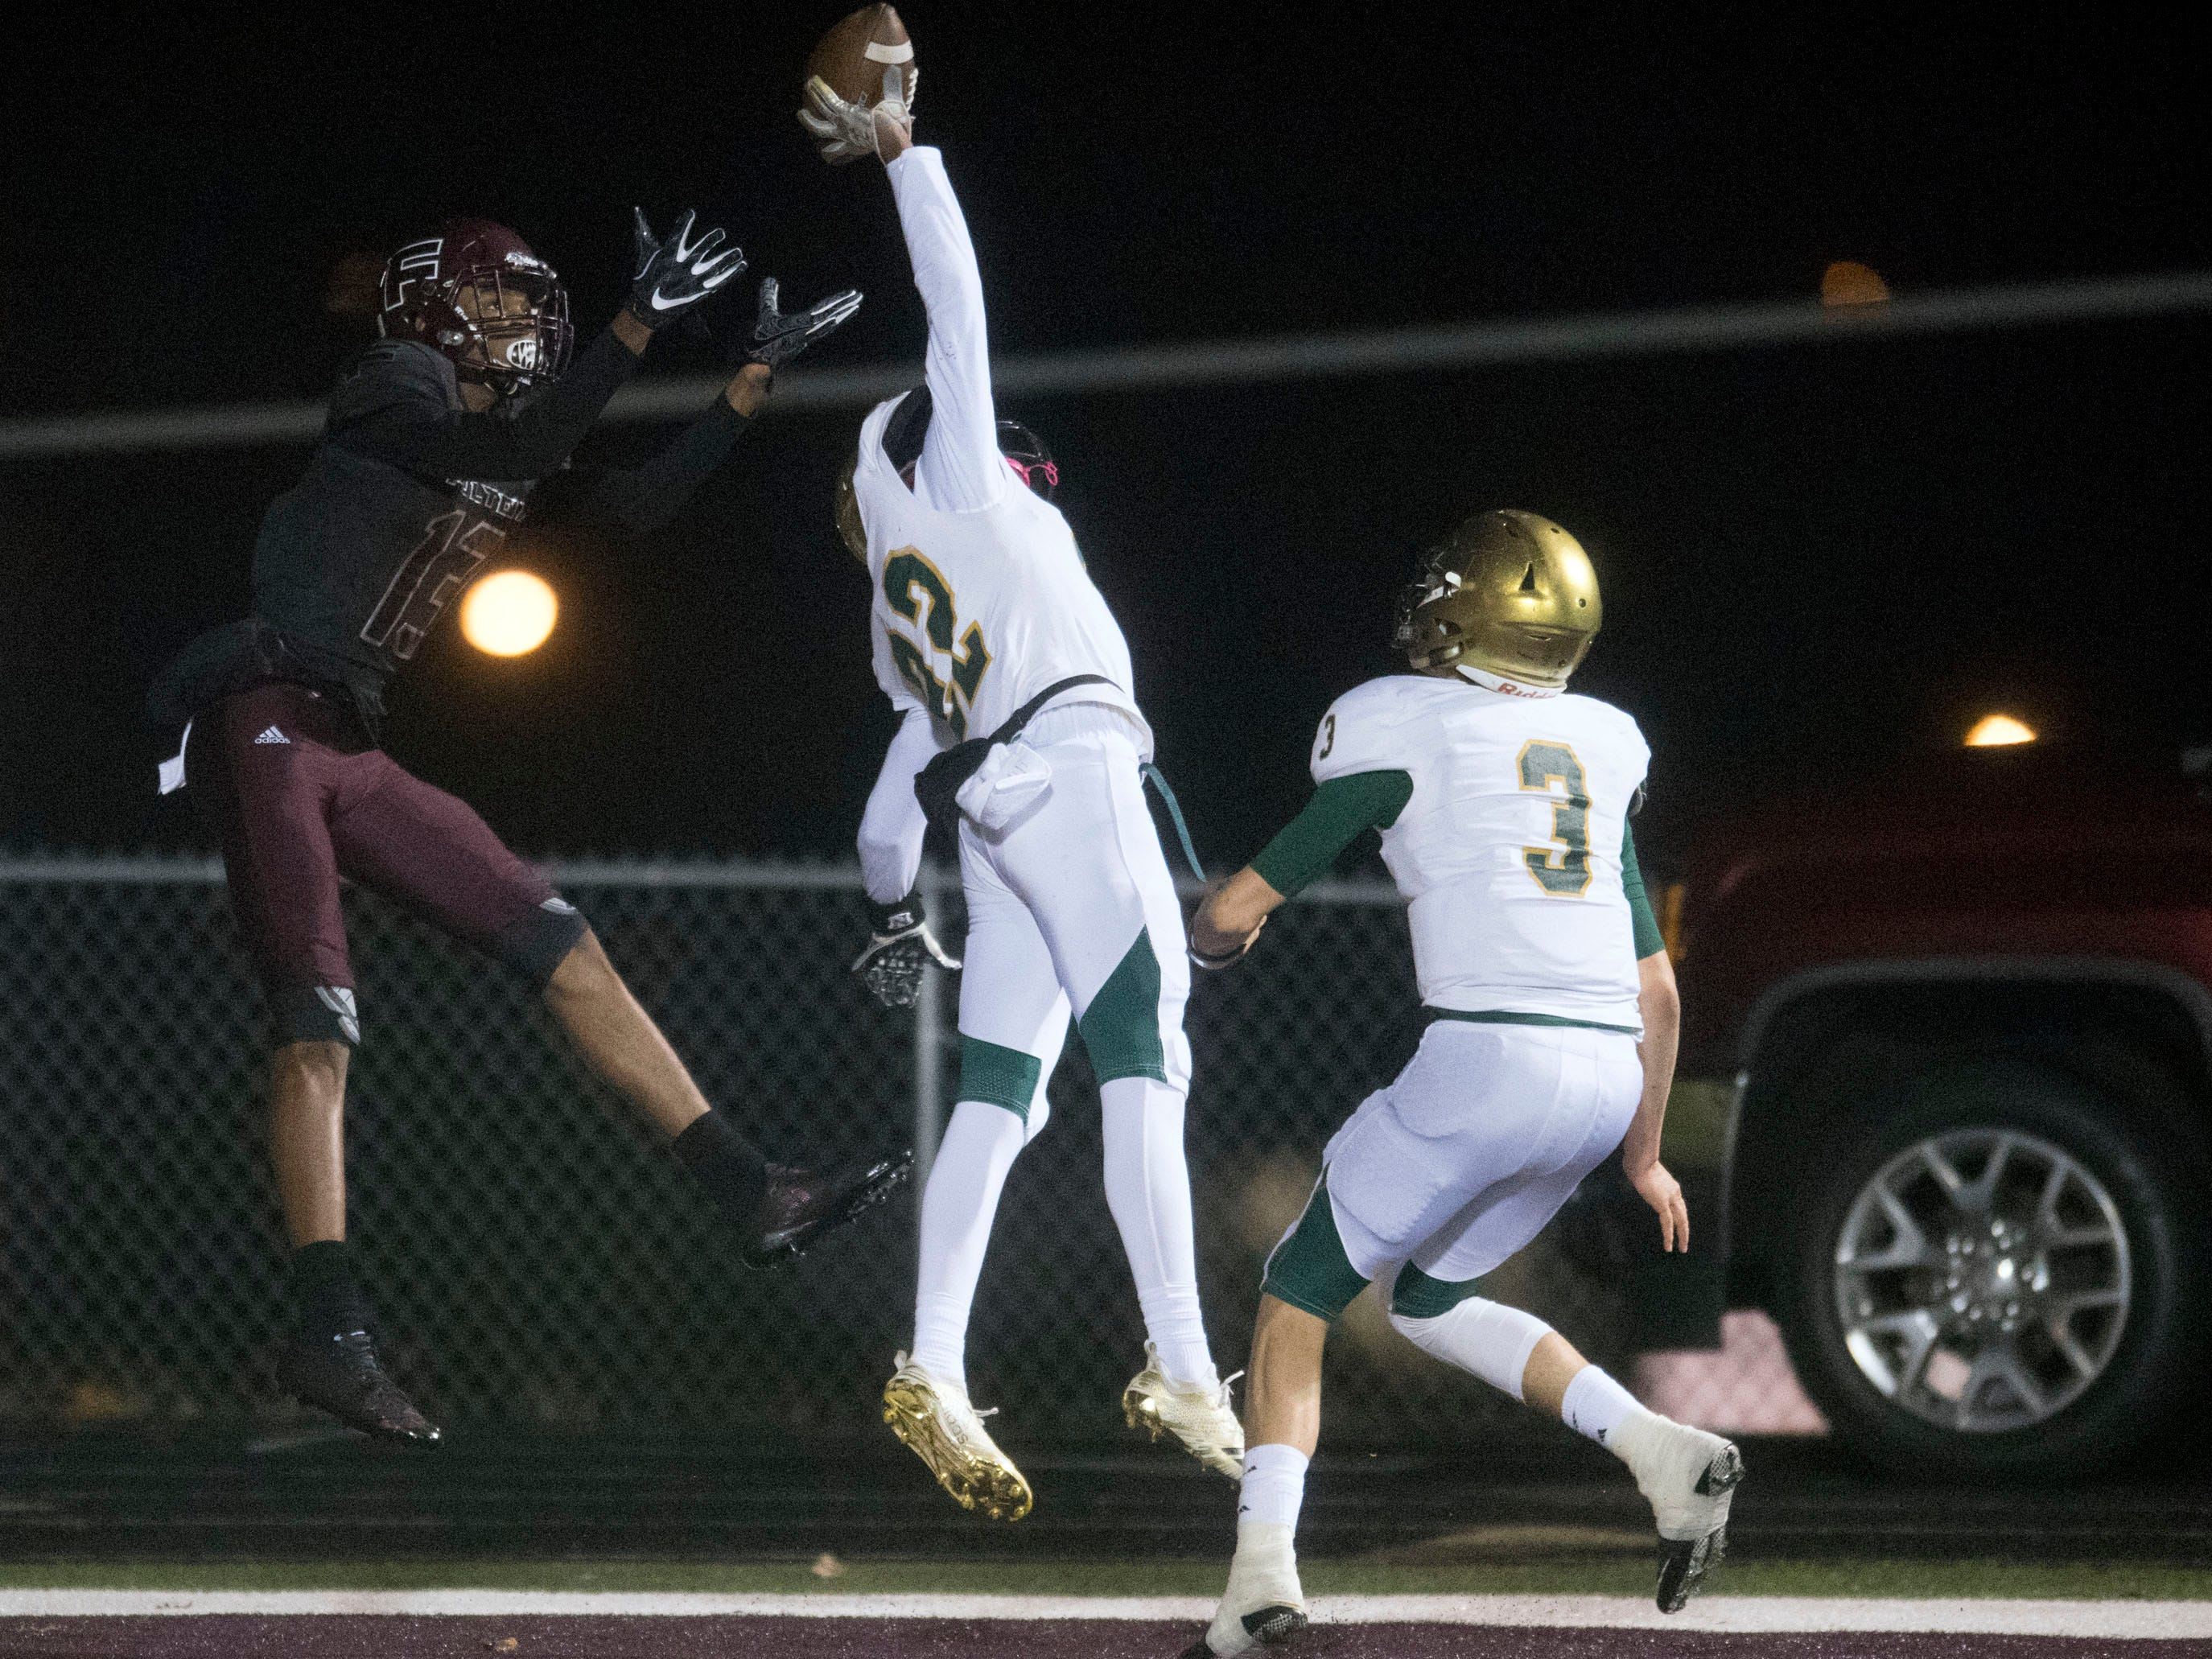 Knoxville Catholic's Seth Lawson (42) breaks up a pass intended for Fulton's Amir Johnson (13). Knoxville Catholic beat Fulton, 28-25 in the second round of the Class 5A playoffs on Friday, November 9, 2018.